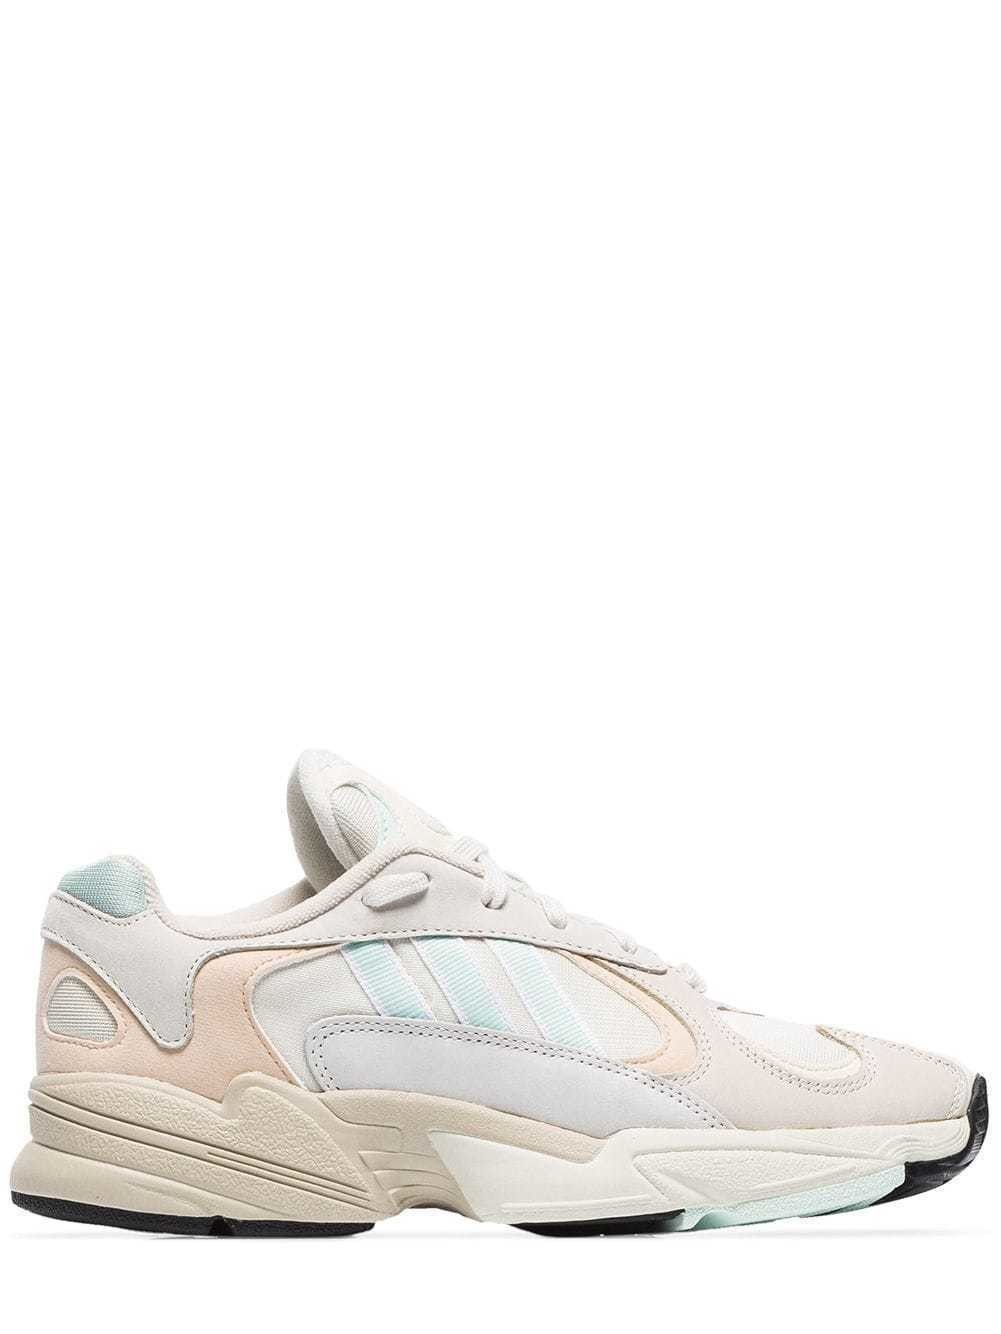 adidas Yung 1 chunky sneakers - White